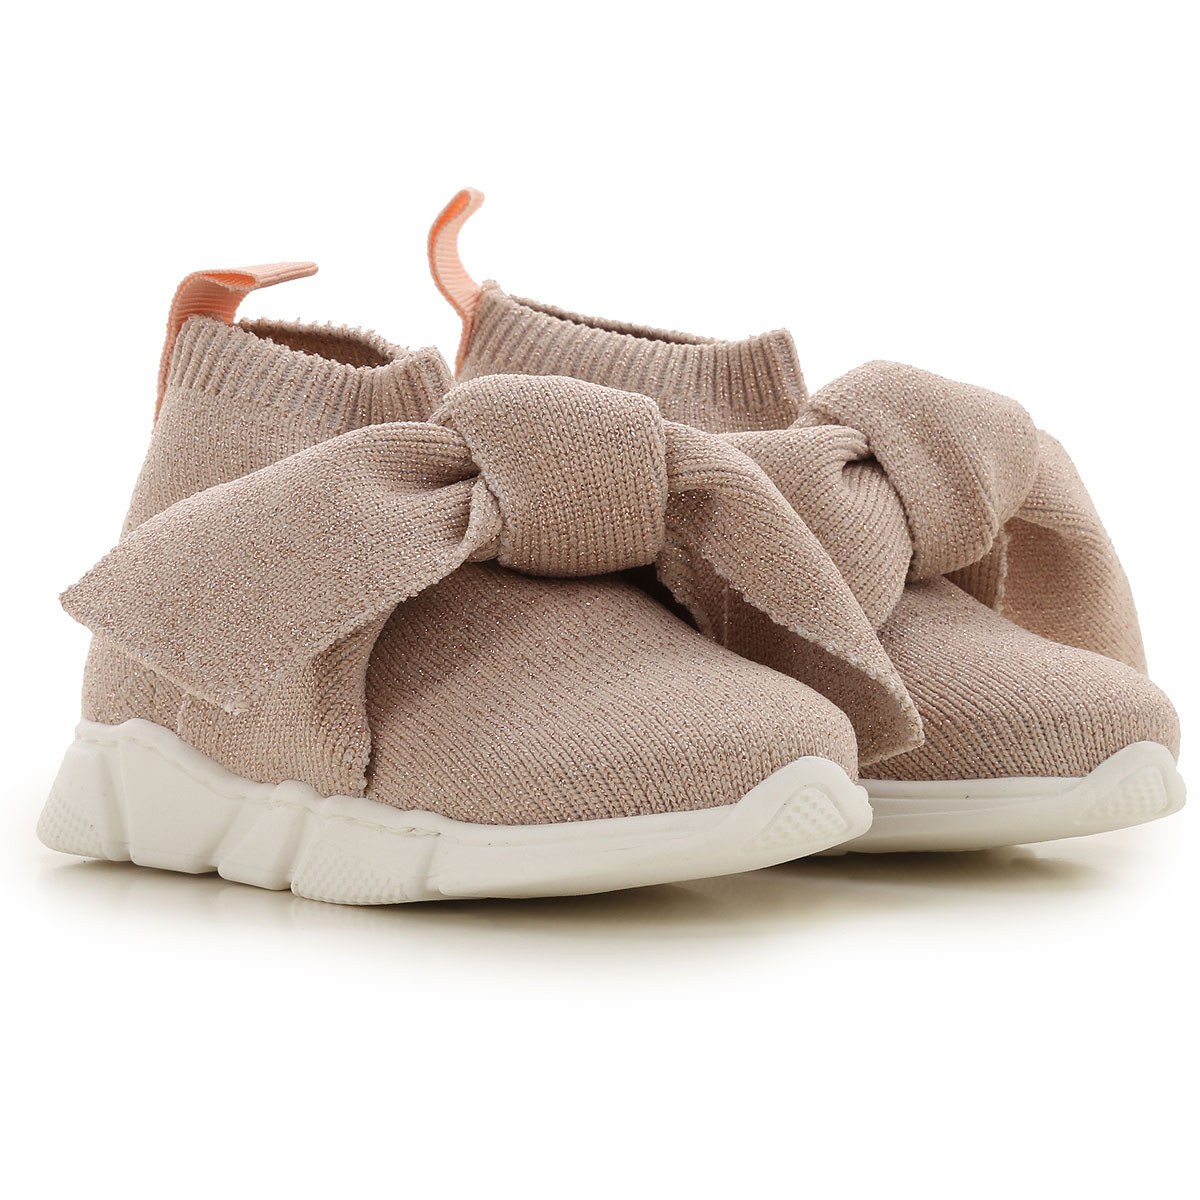 Florens Kids Shoes for Girls On Sale, Antic Rose, Fabric, 2019, 20 21 23 24 25 26 27 28 29